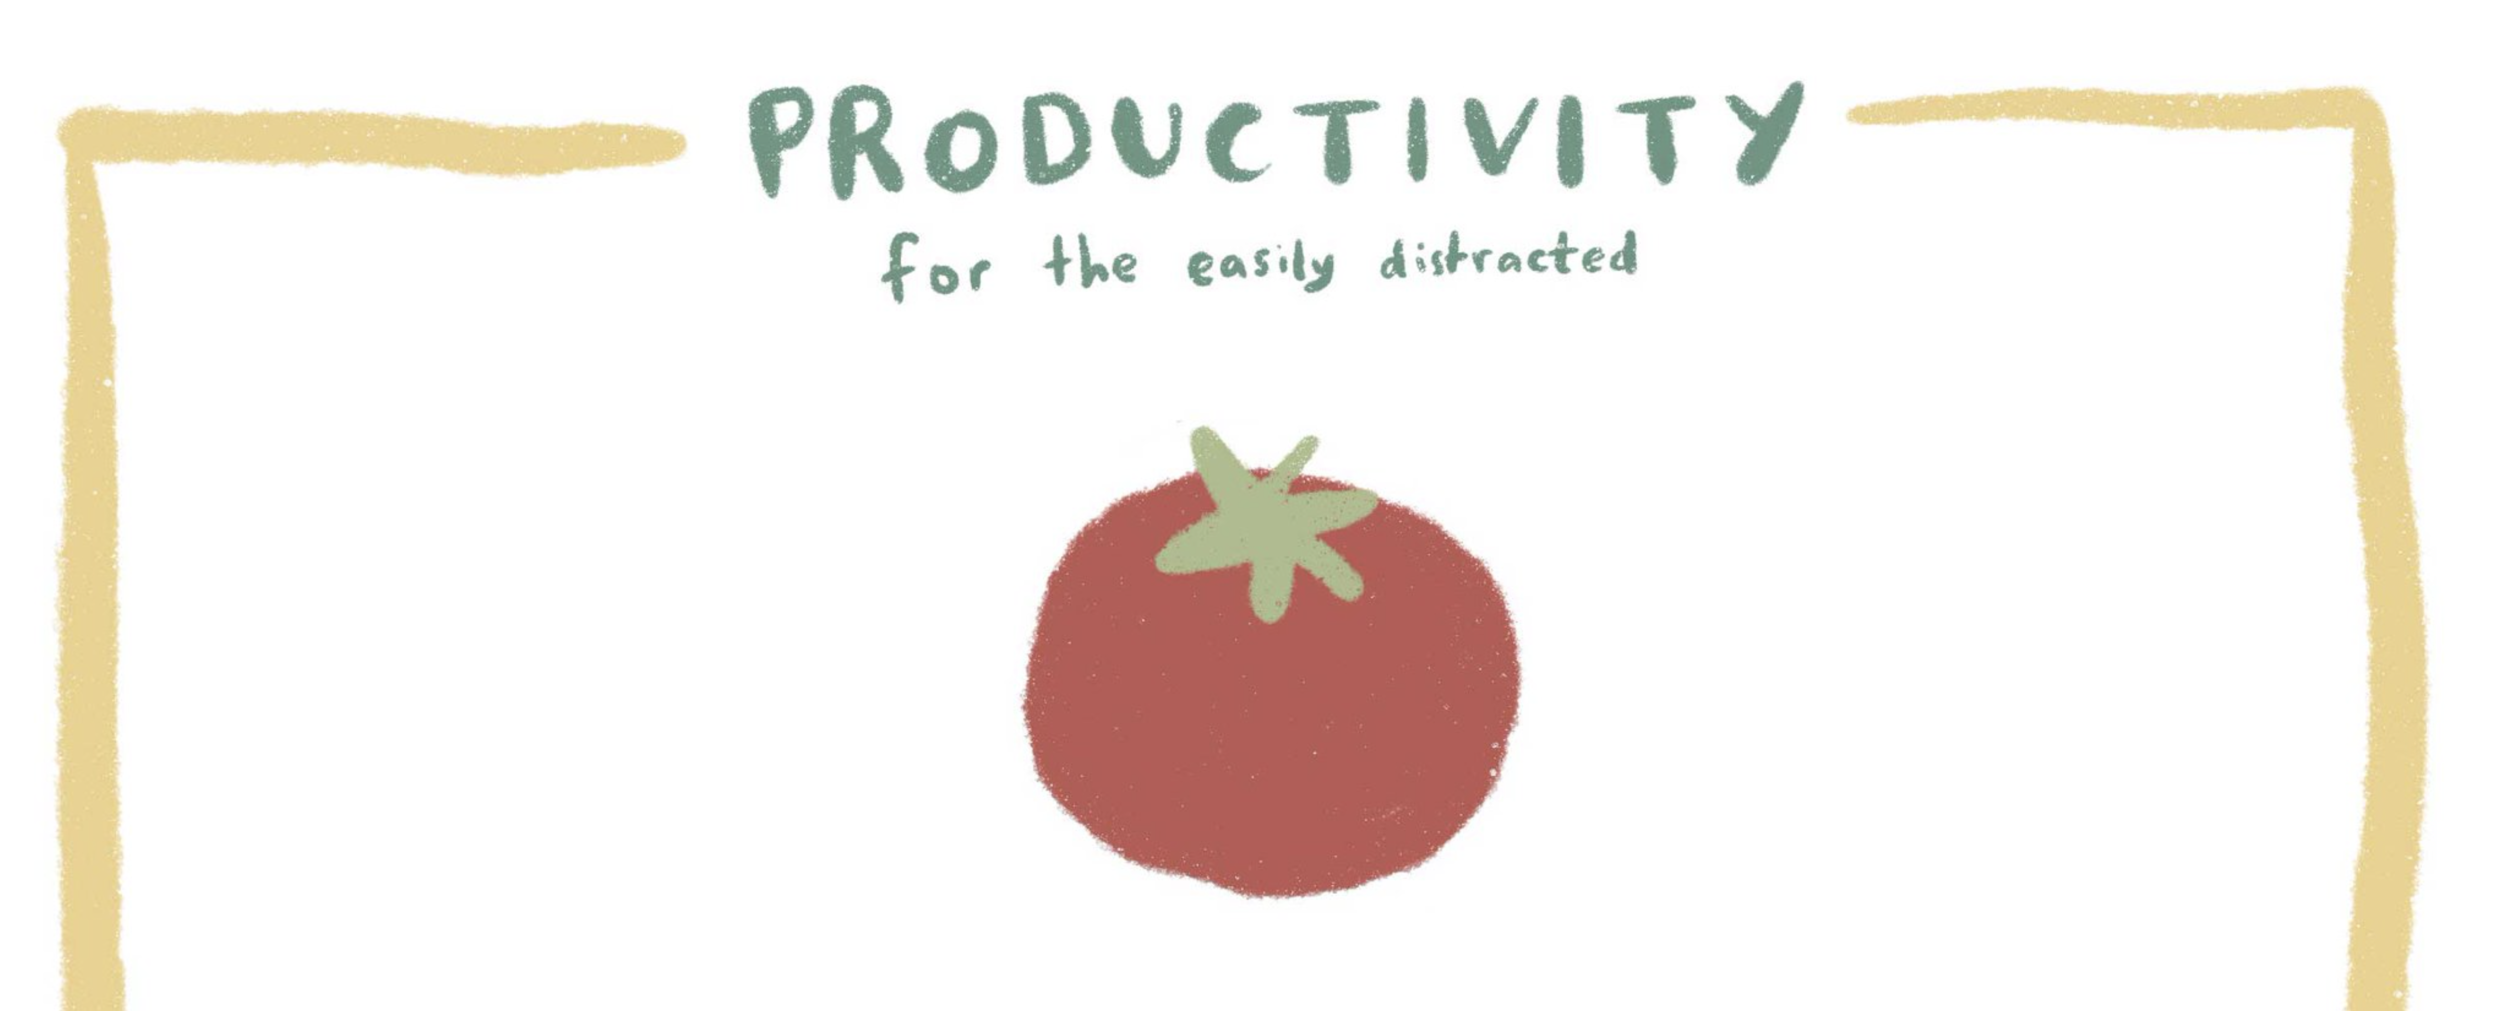 Productivity for the easily distracted katie chappell free guide illustrated pomodoro technique focus.png